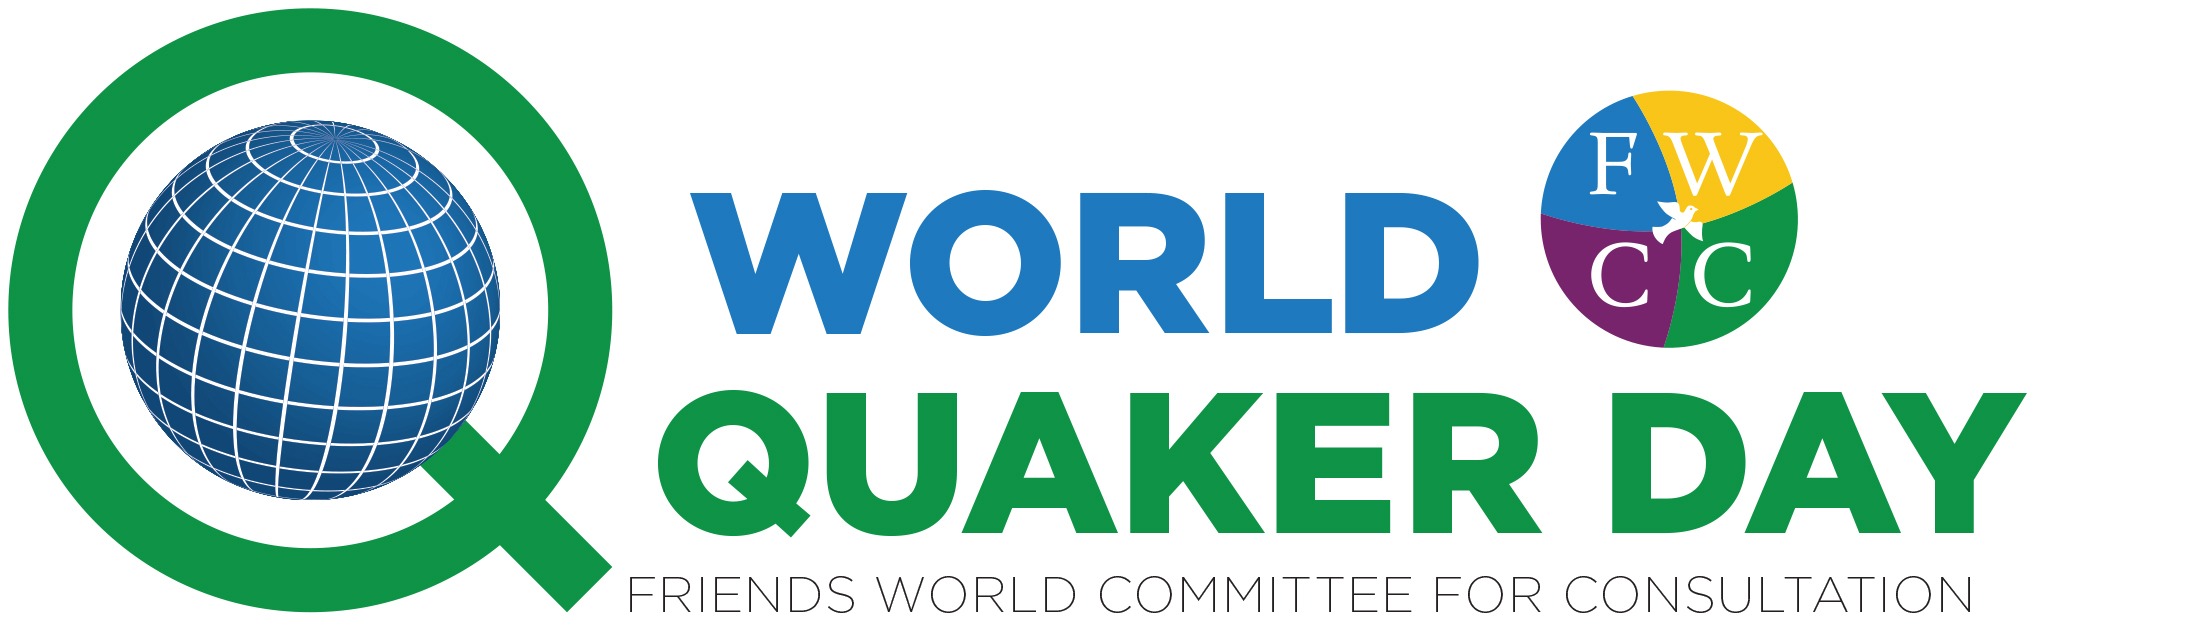 World Quaker Day - FWCC